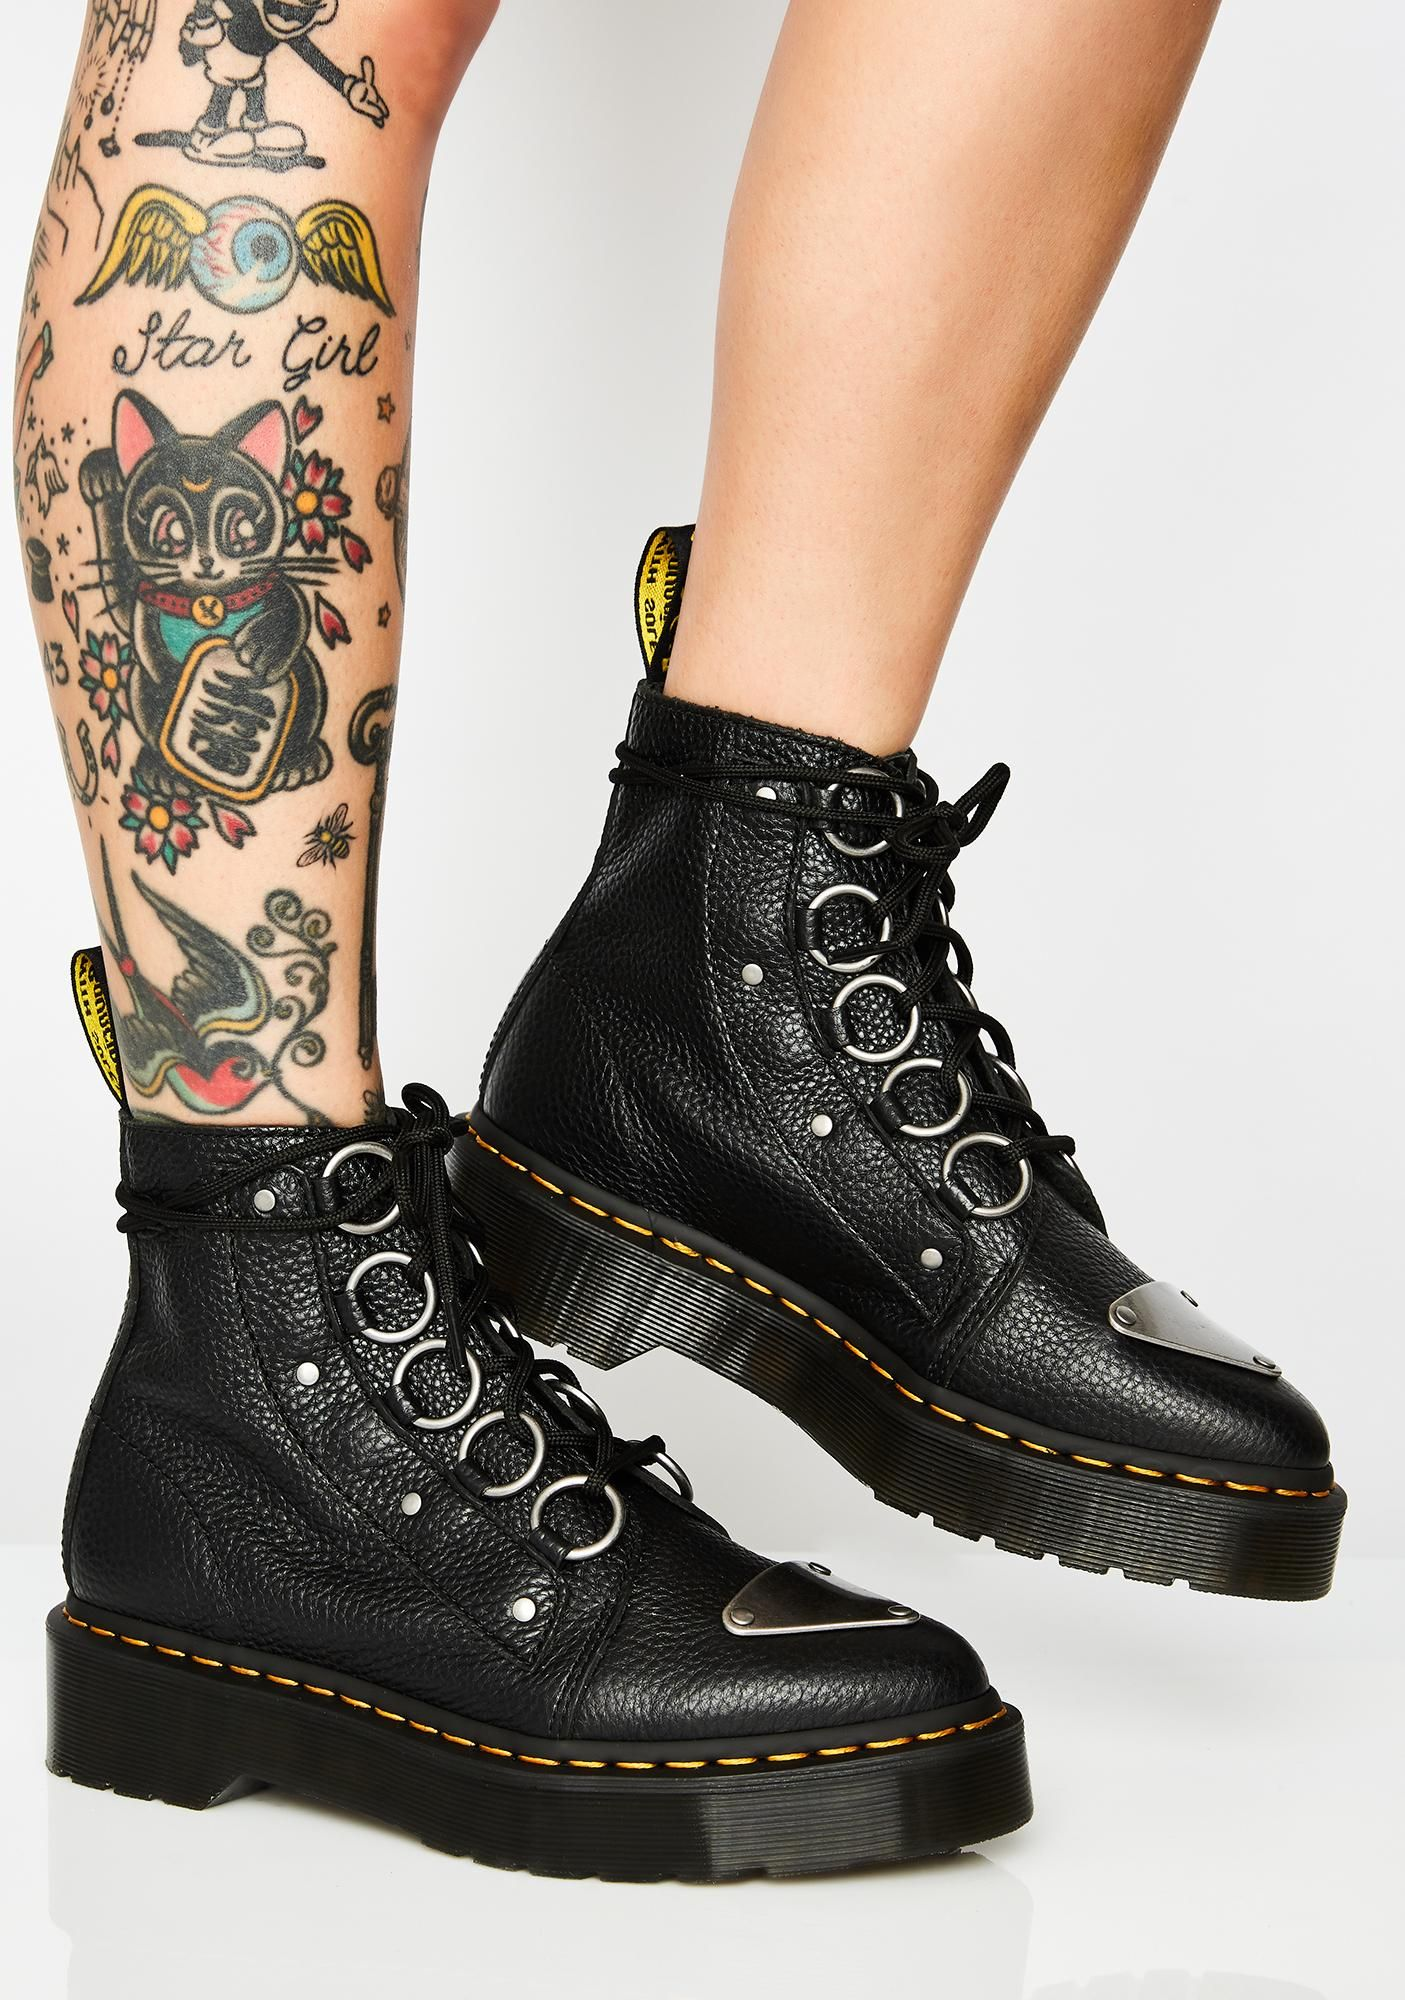 Farylle Aunt Sally Boots | Boots